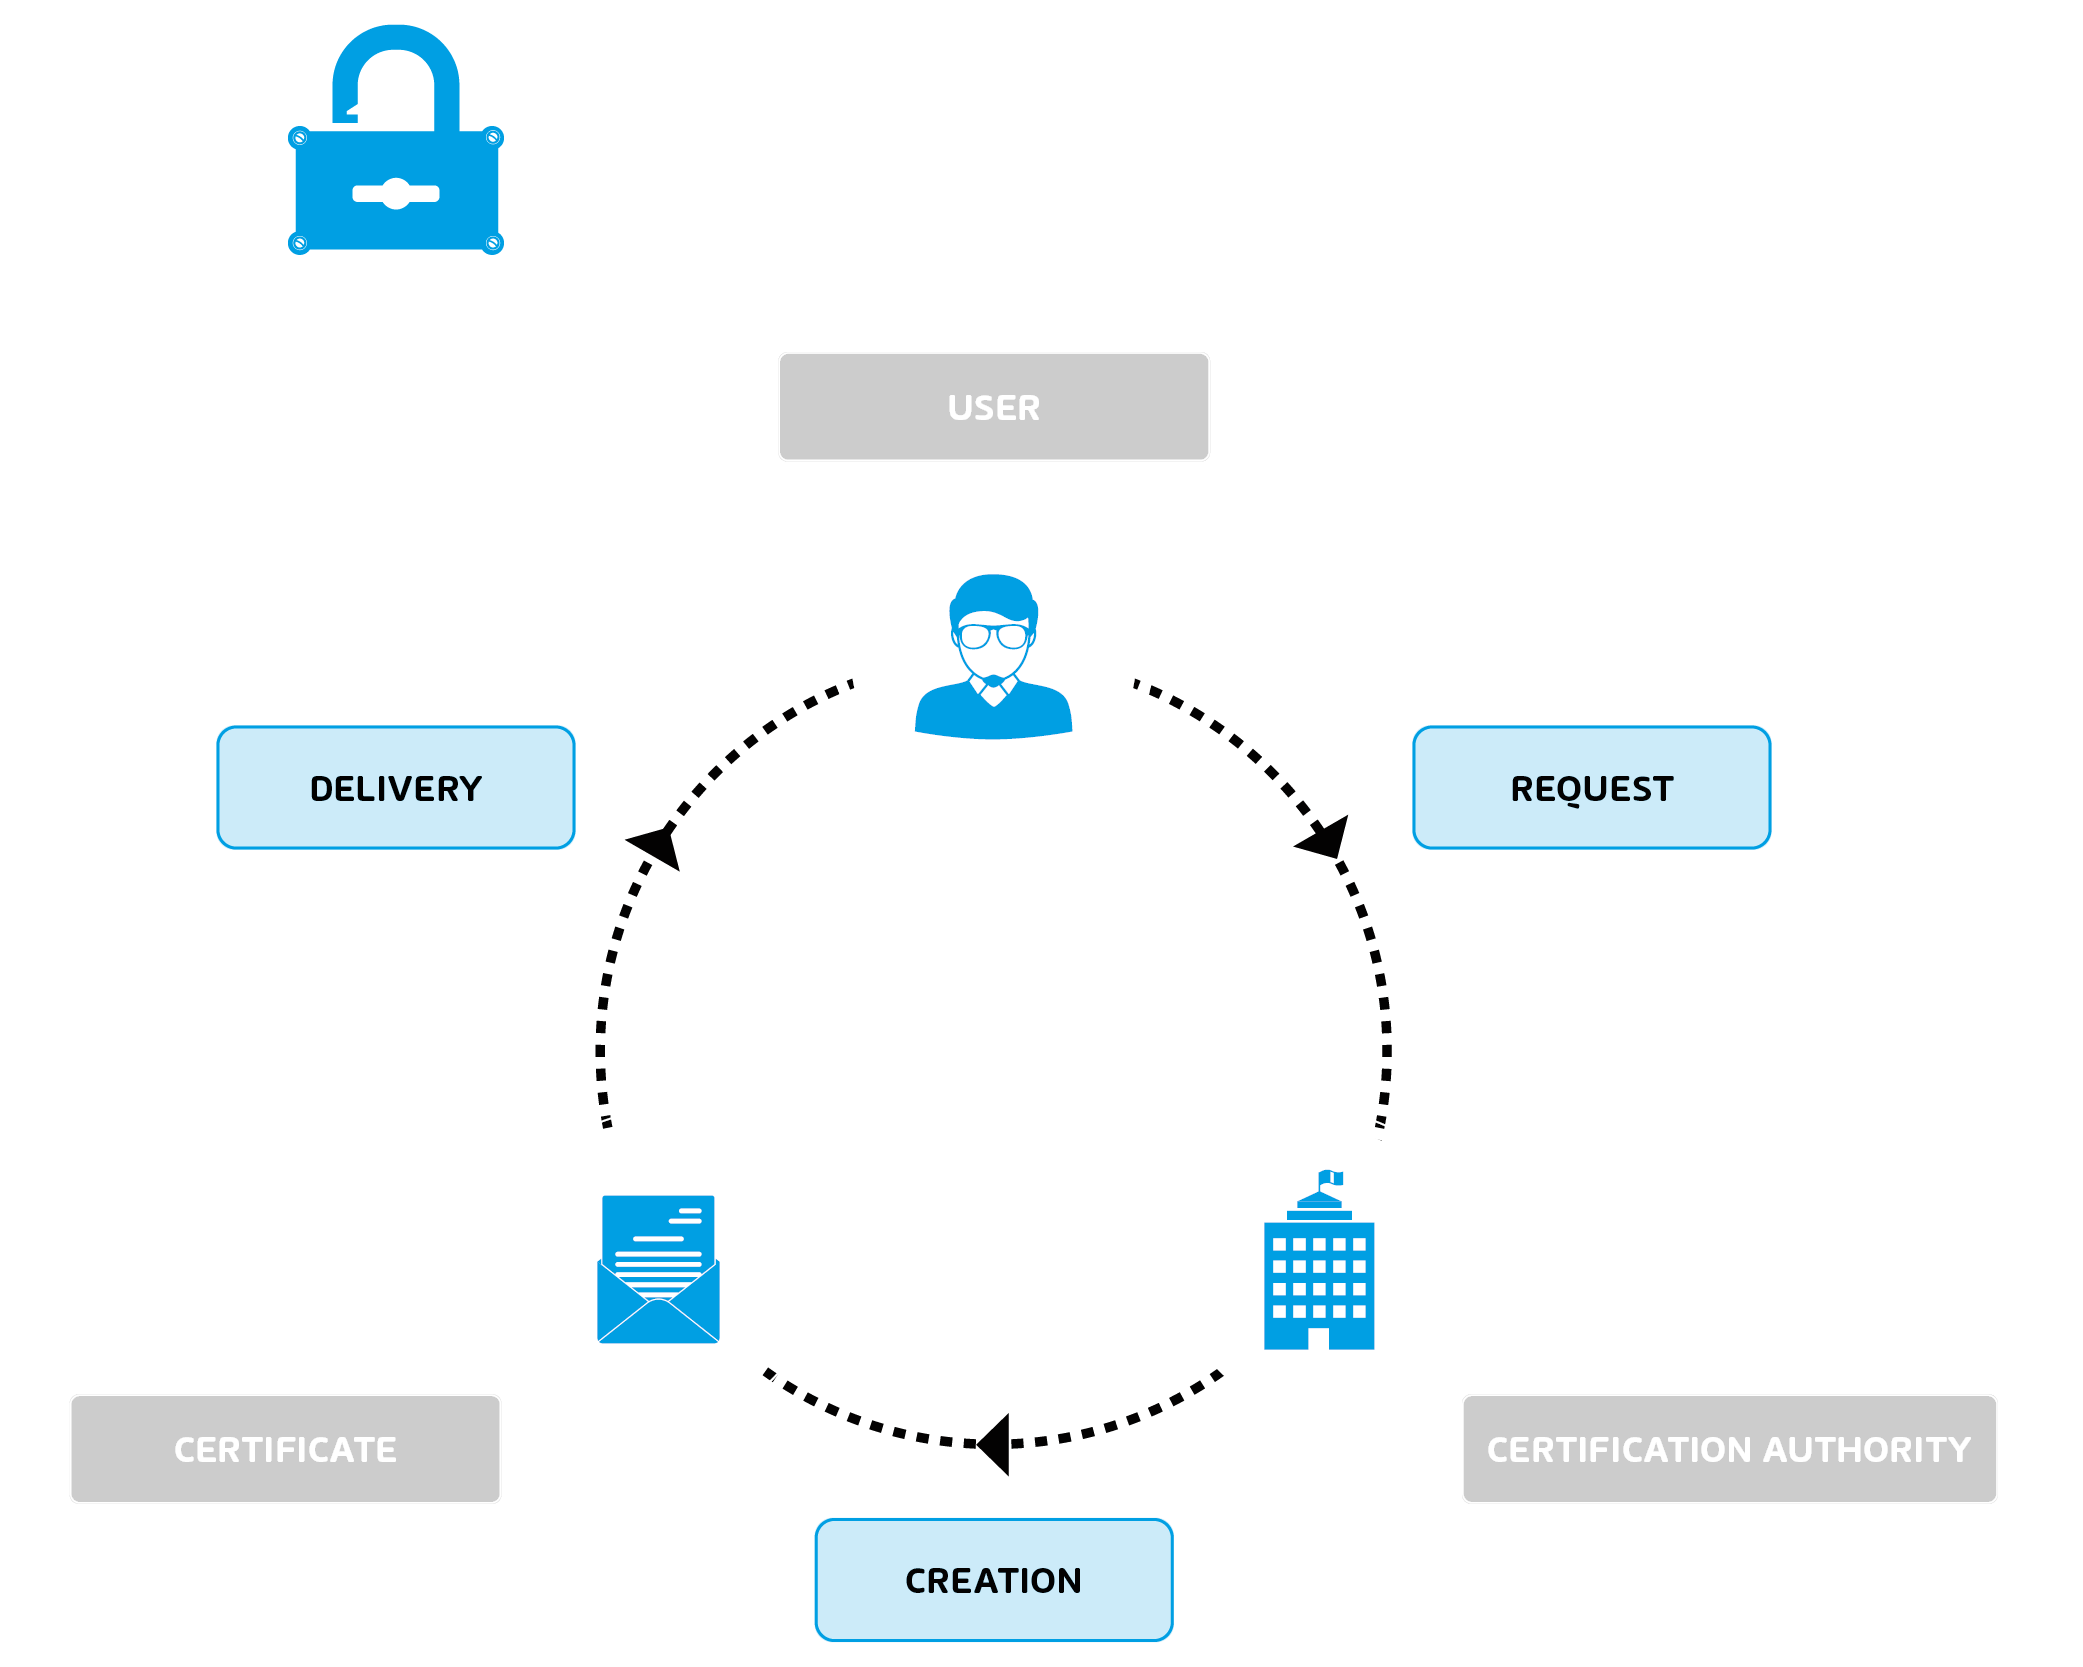 Infographic about S/MIME